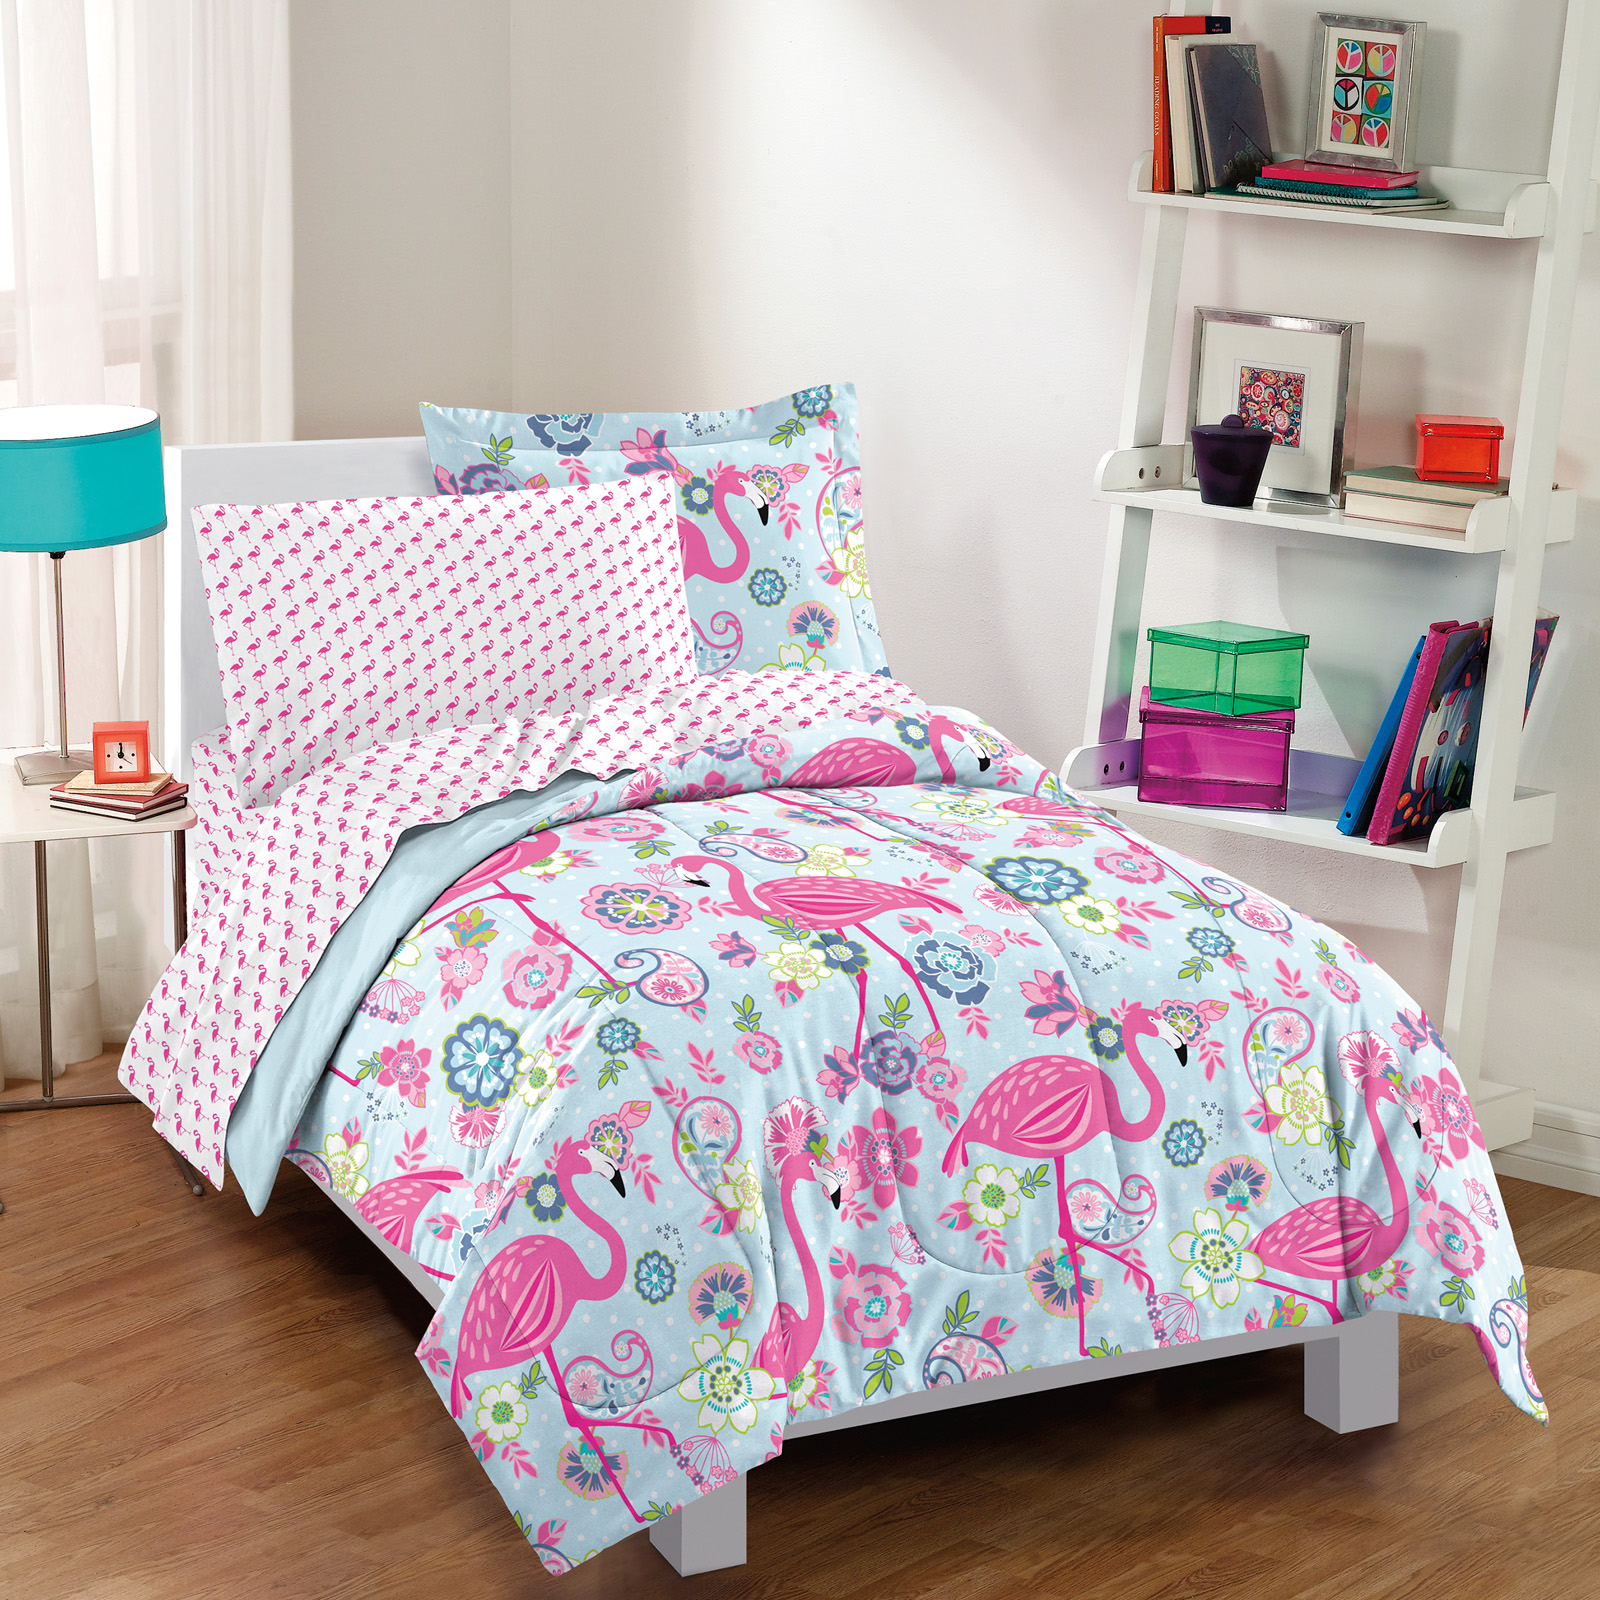 Flamingo Bed in a Bag Set by Dream Factory - Bedding and ...